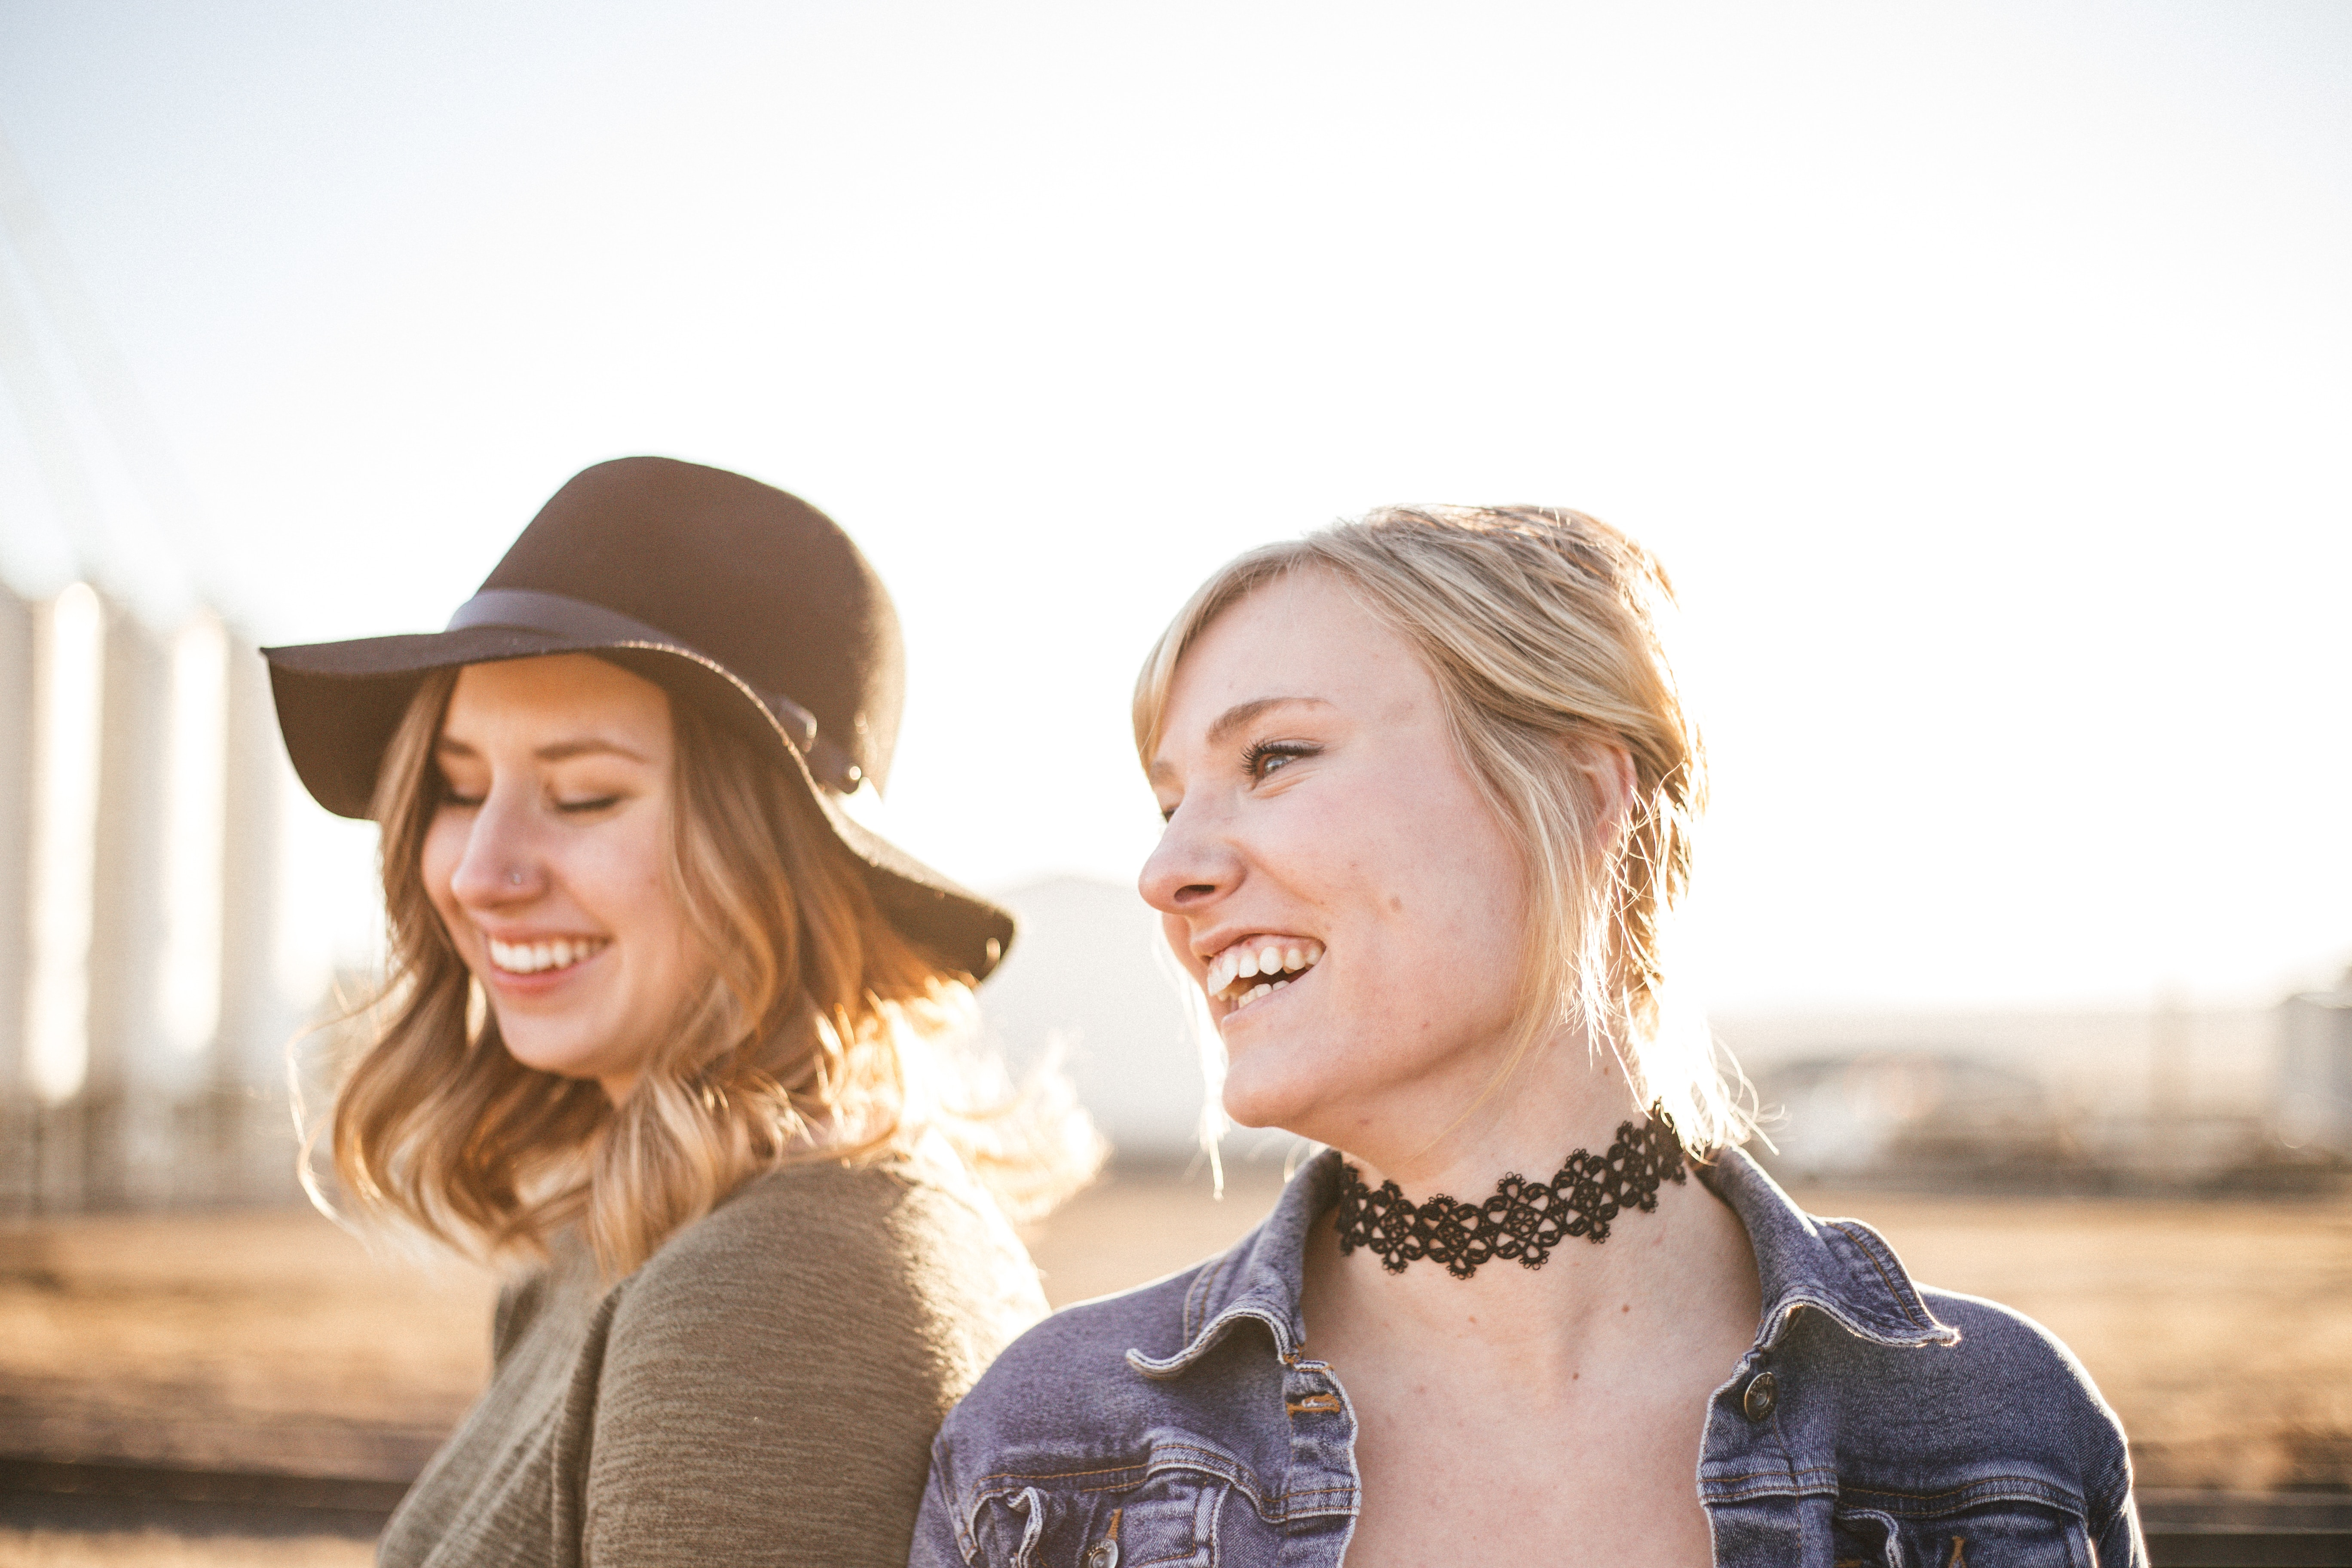 Women with hat and choker